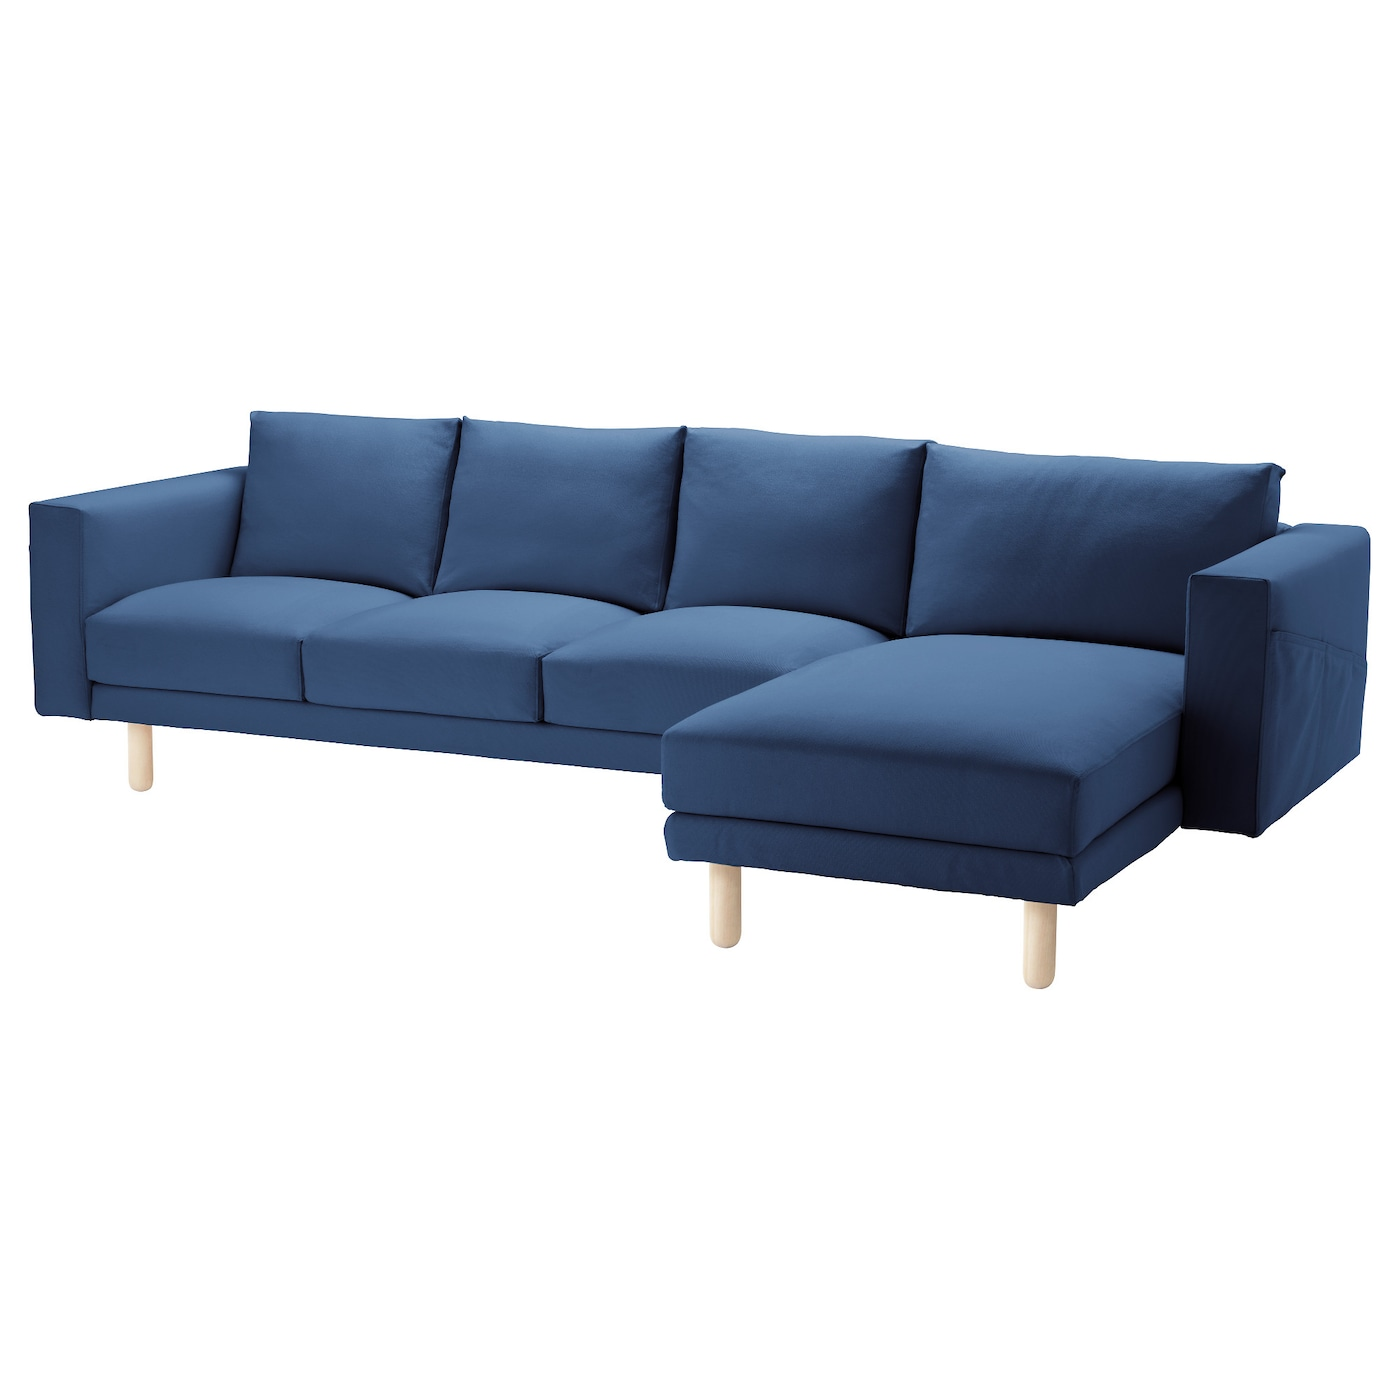 Norsborg three seat sofa and chaise longue gr sbo dark for Chaise longue sofa